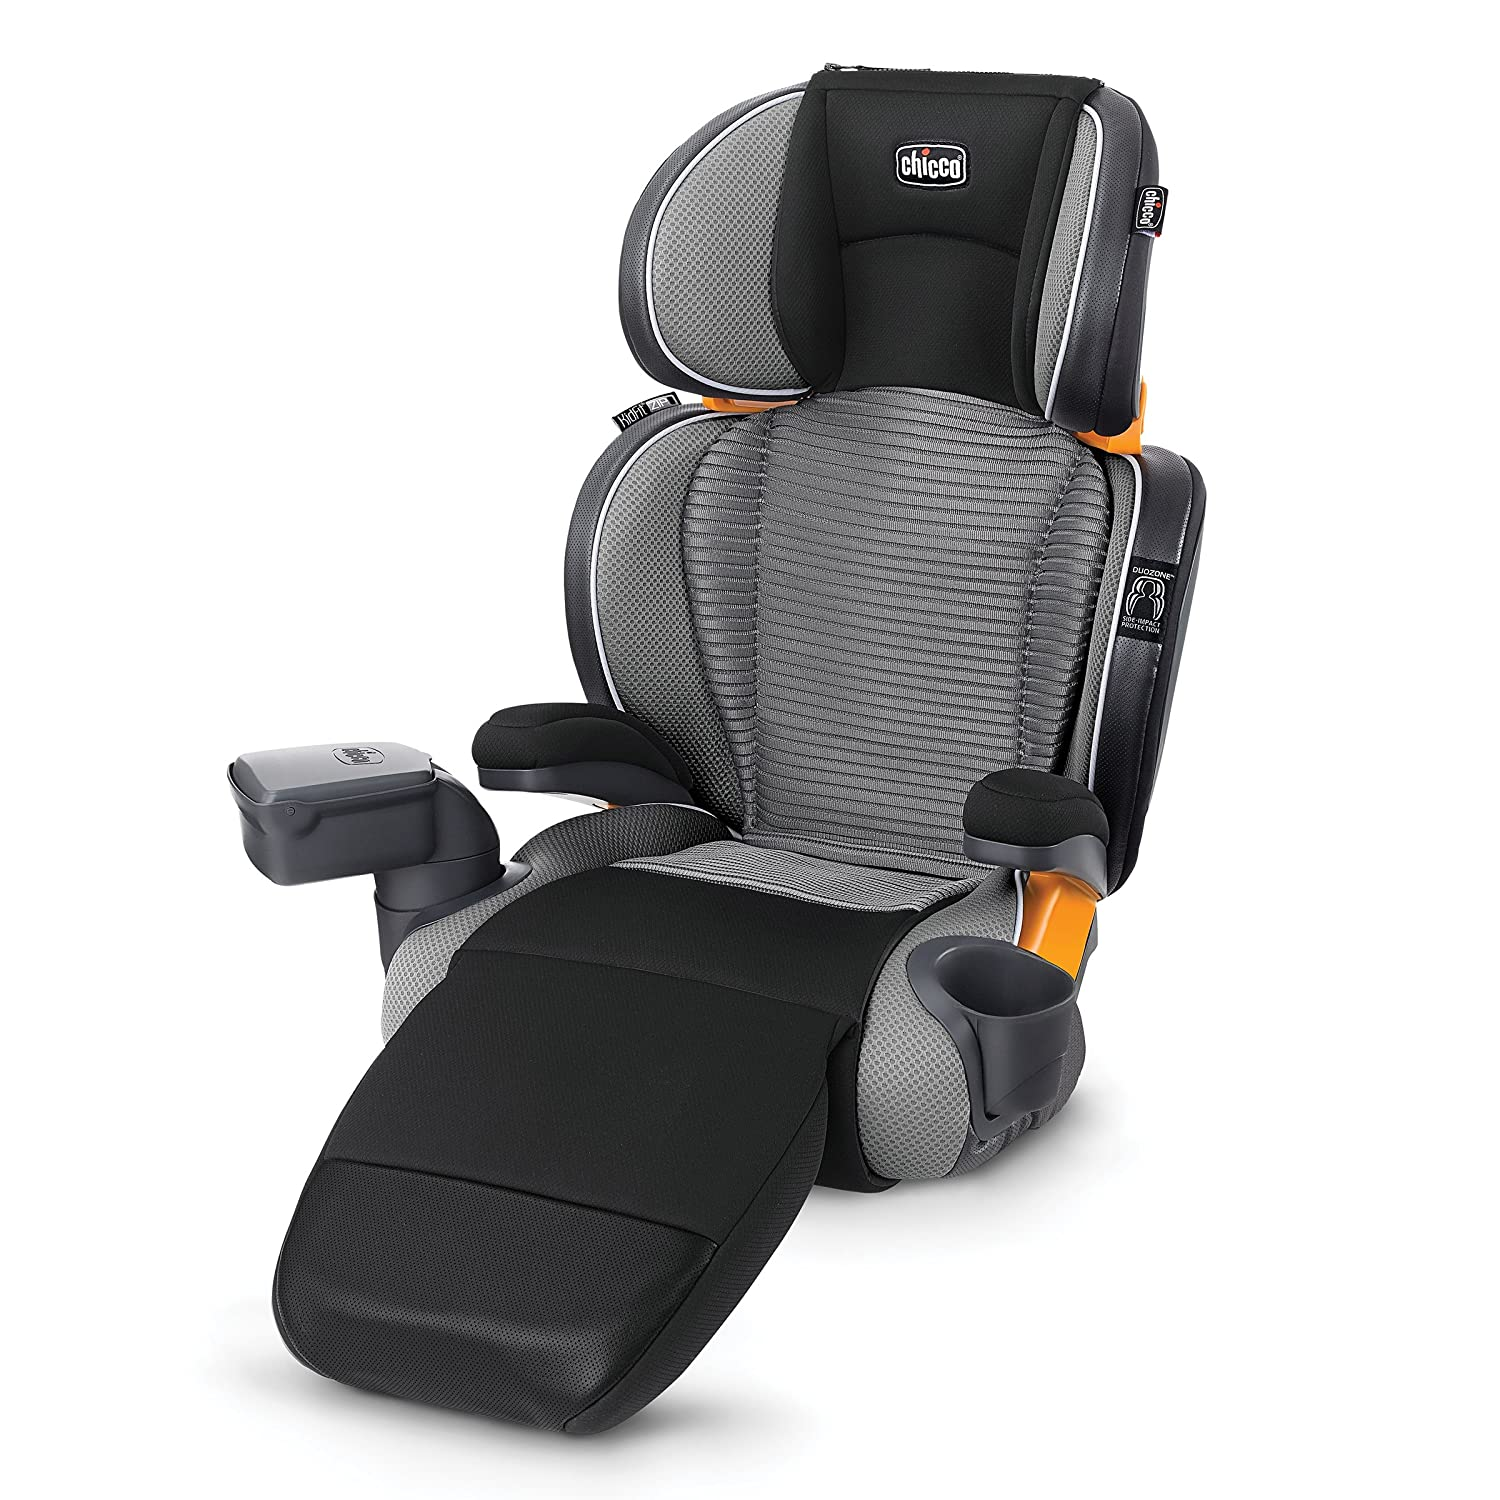 Chicco KidFit Zip Air Plus 2-in-1 Belt Positioning Booster Car Seat - Q Collection, Black/Grey